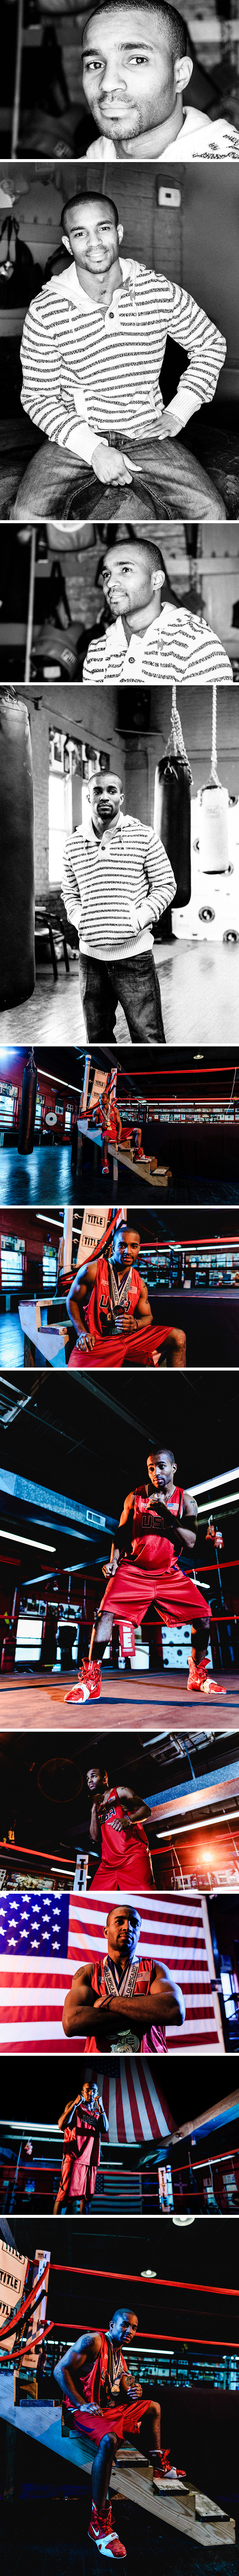 Olympic Boxer Leroy Davila Portrait Session